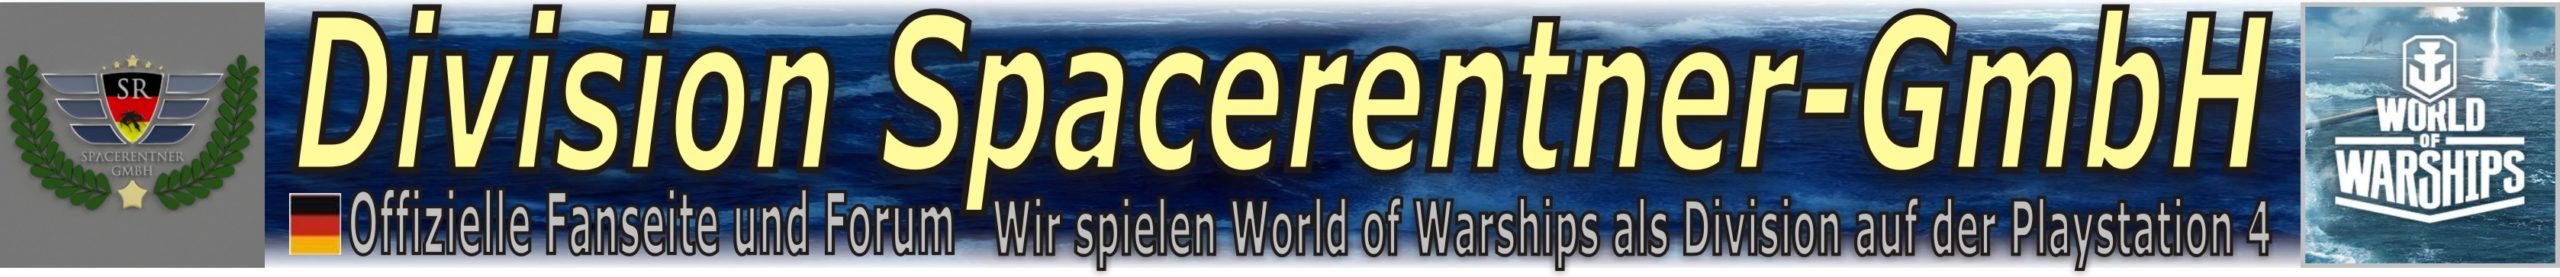 Spacerentner-GmbH  World of Warships